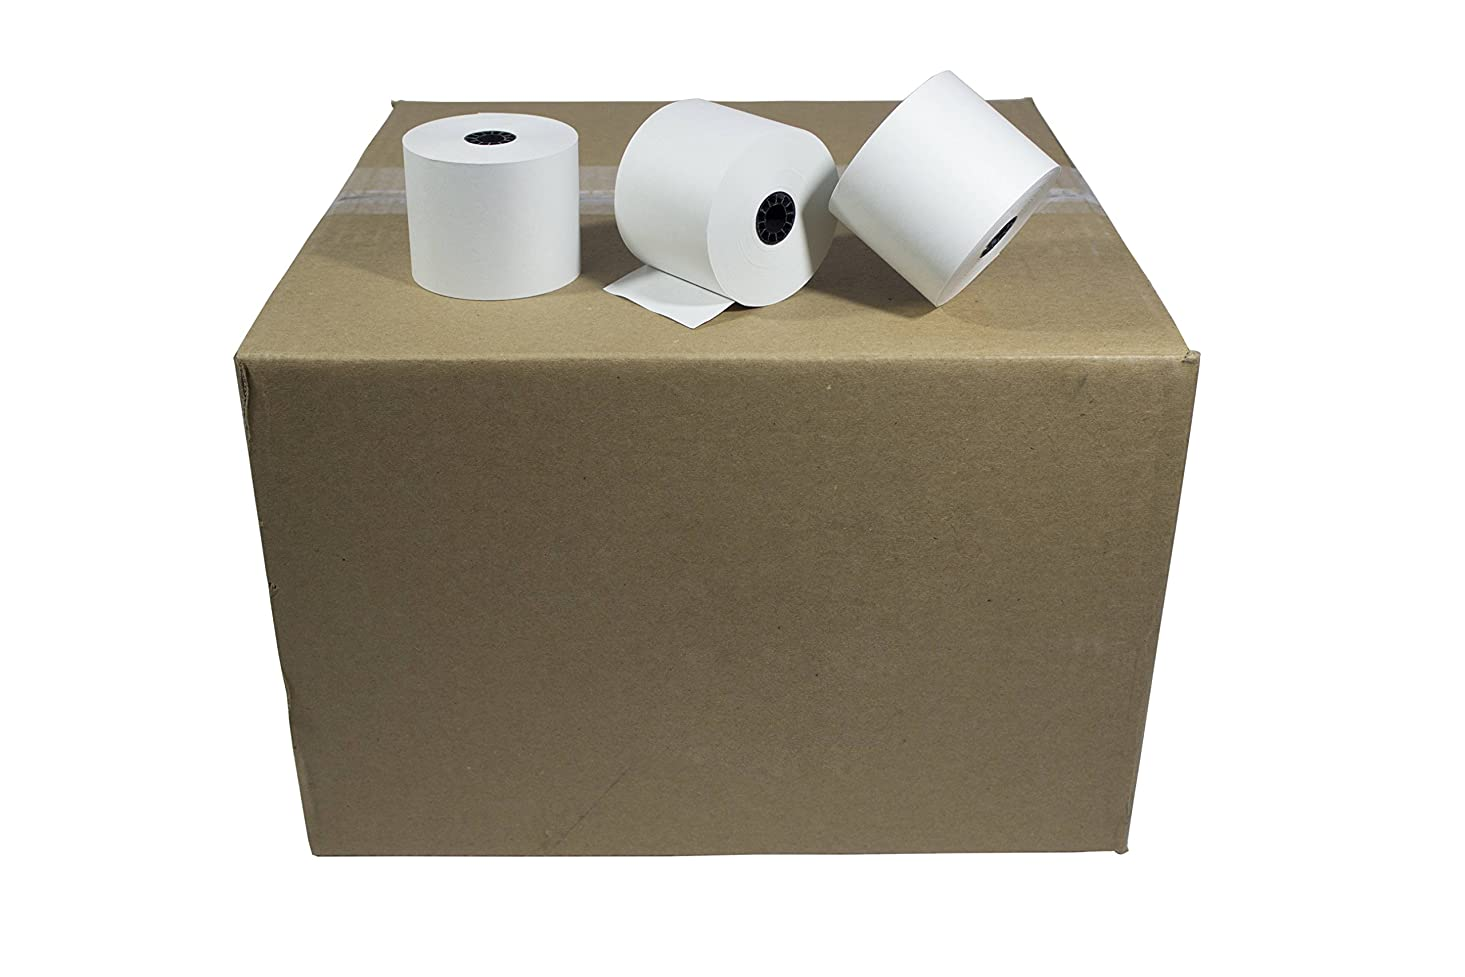 Calculator Adding Machine 1-ply Paper Rolls 2 1/4 X 150' 100 Rolls giaqf355501